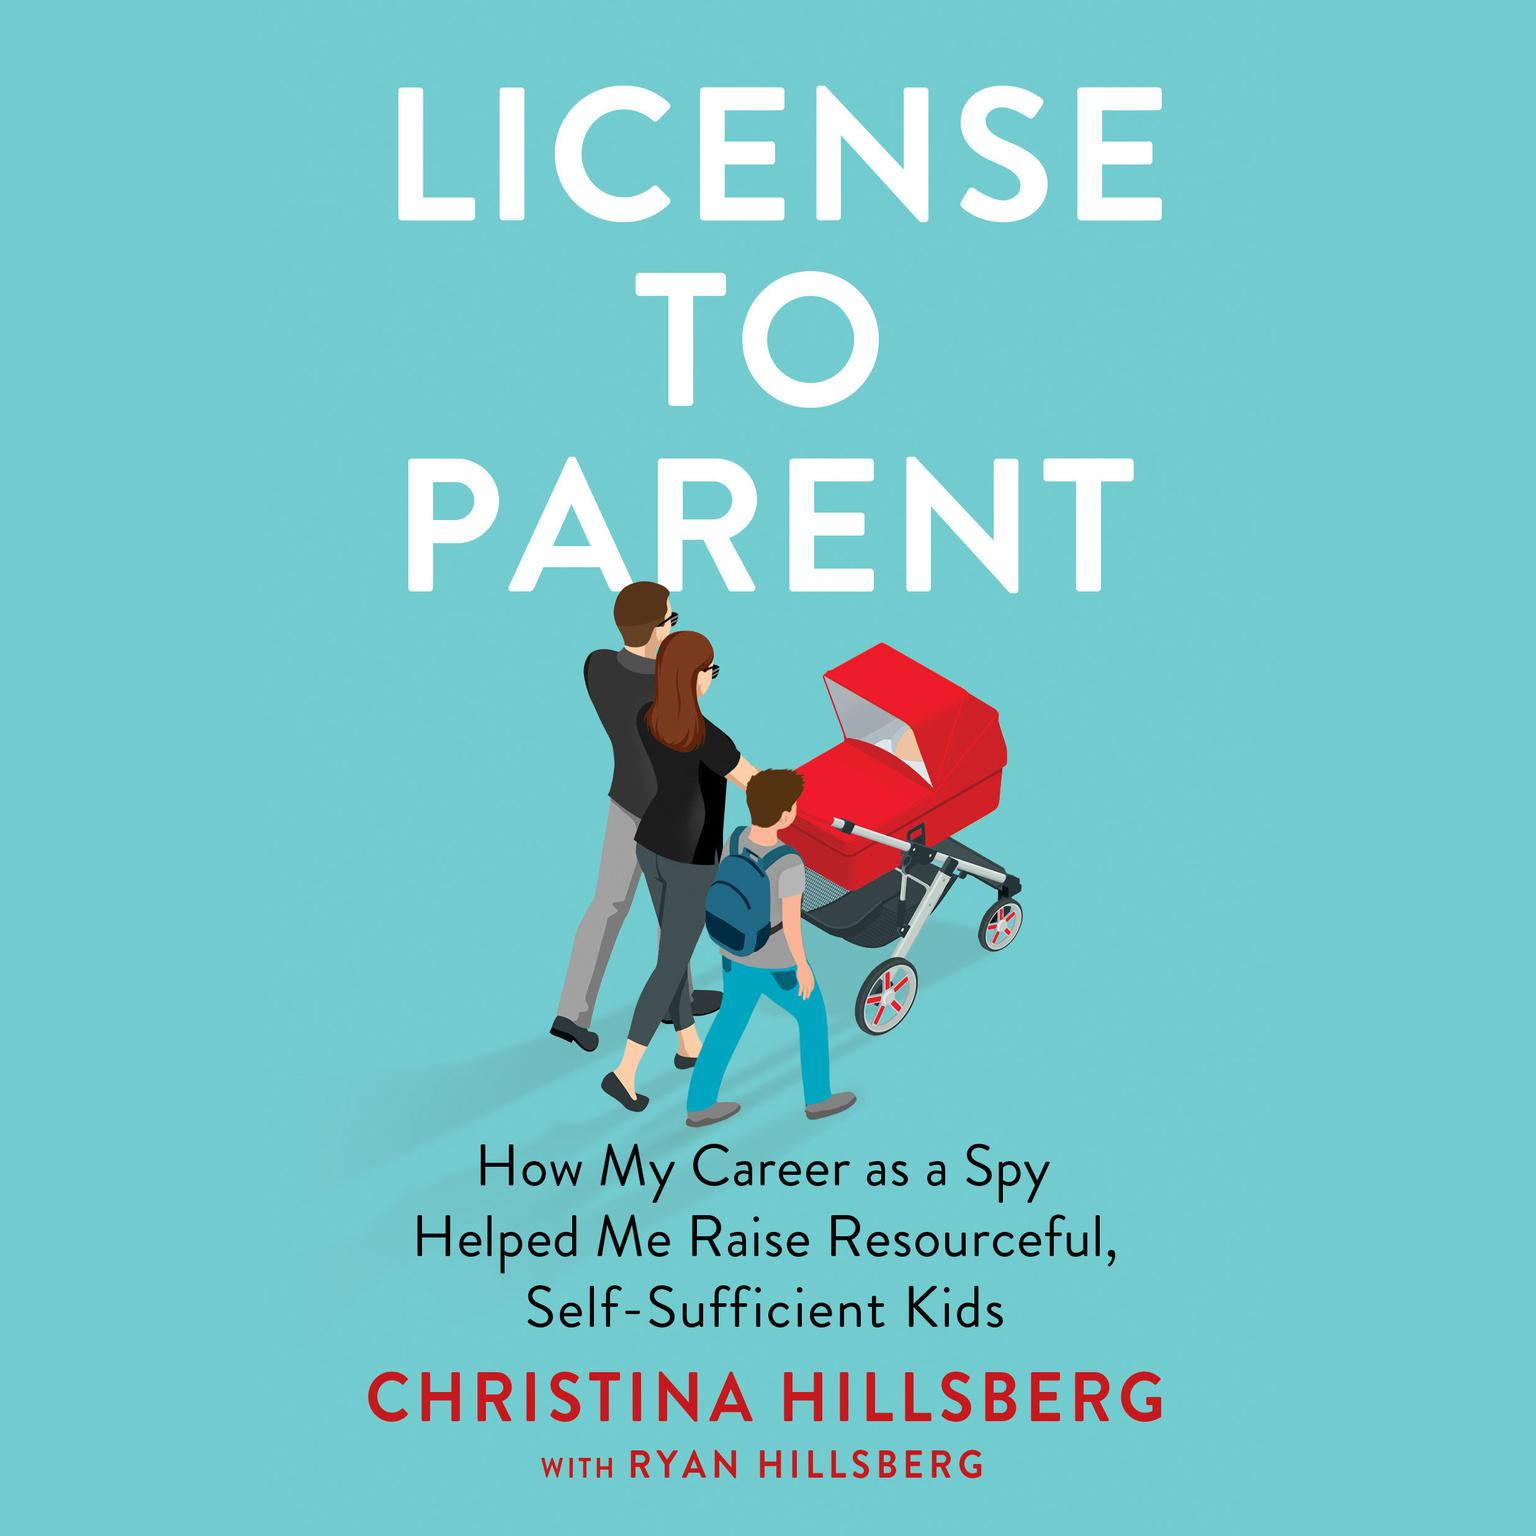 License to Parent: How My Career As a Spy Helped Me Raise Resourceful, Self-Sufficient Kids Audiobook, by Christina Hillsberg